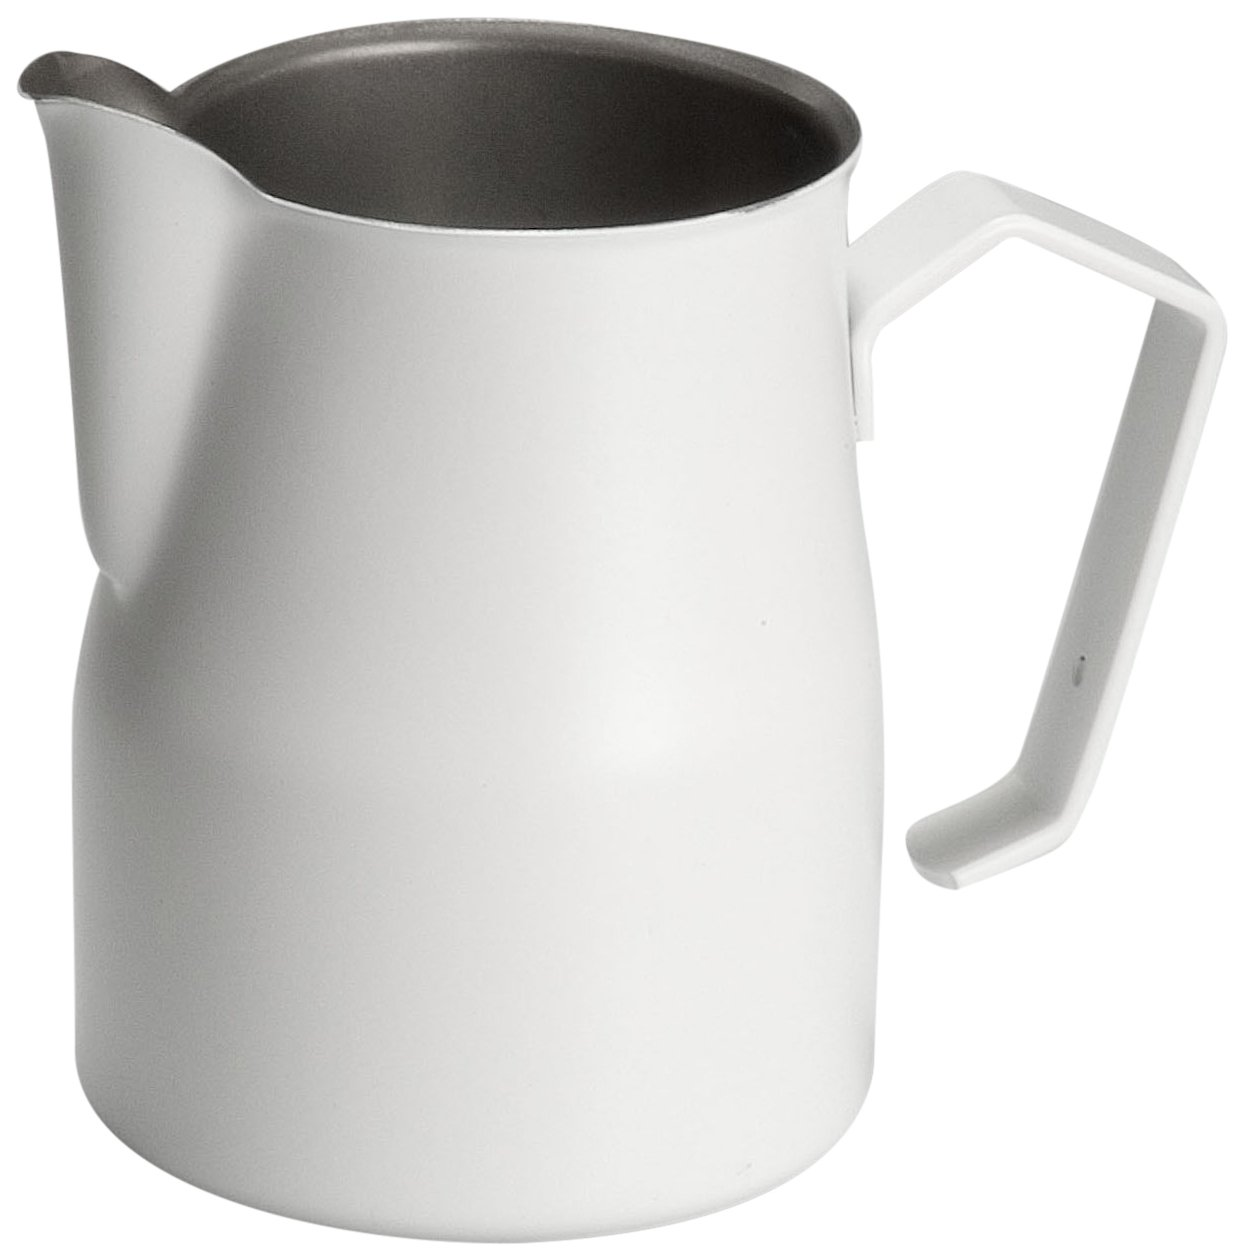 Motta Stainless Steel Professional Milk Pitcher/Jugs, 17 Fluid Ounce, White